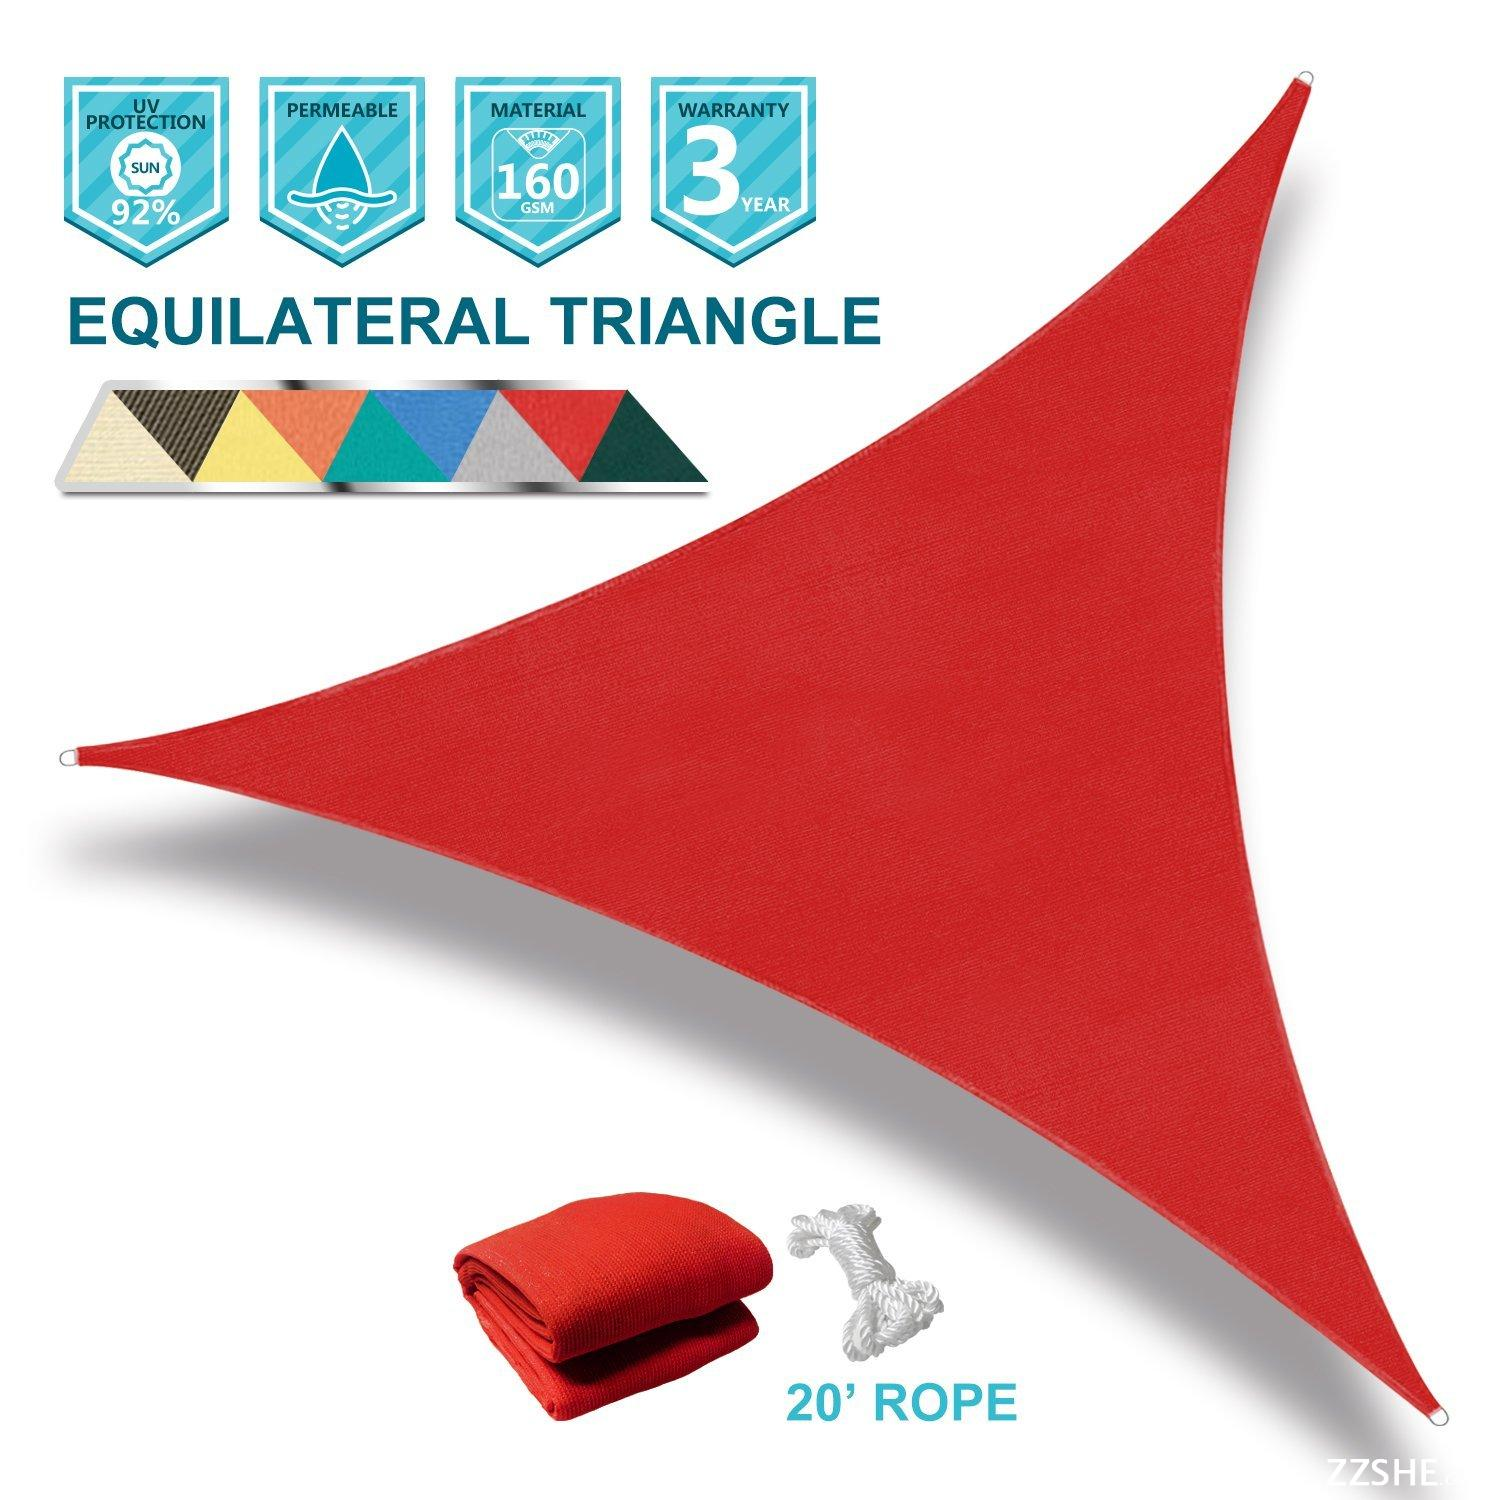 Coarbor 16' x 16' x 16' Triangle Red UV Block Sun Shade Sail Perfect for Patio Outdoor Garden